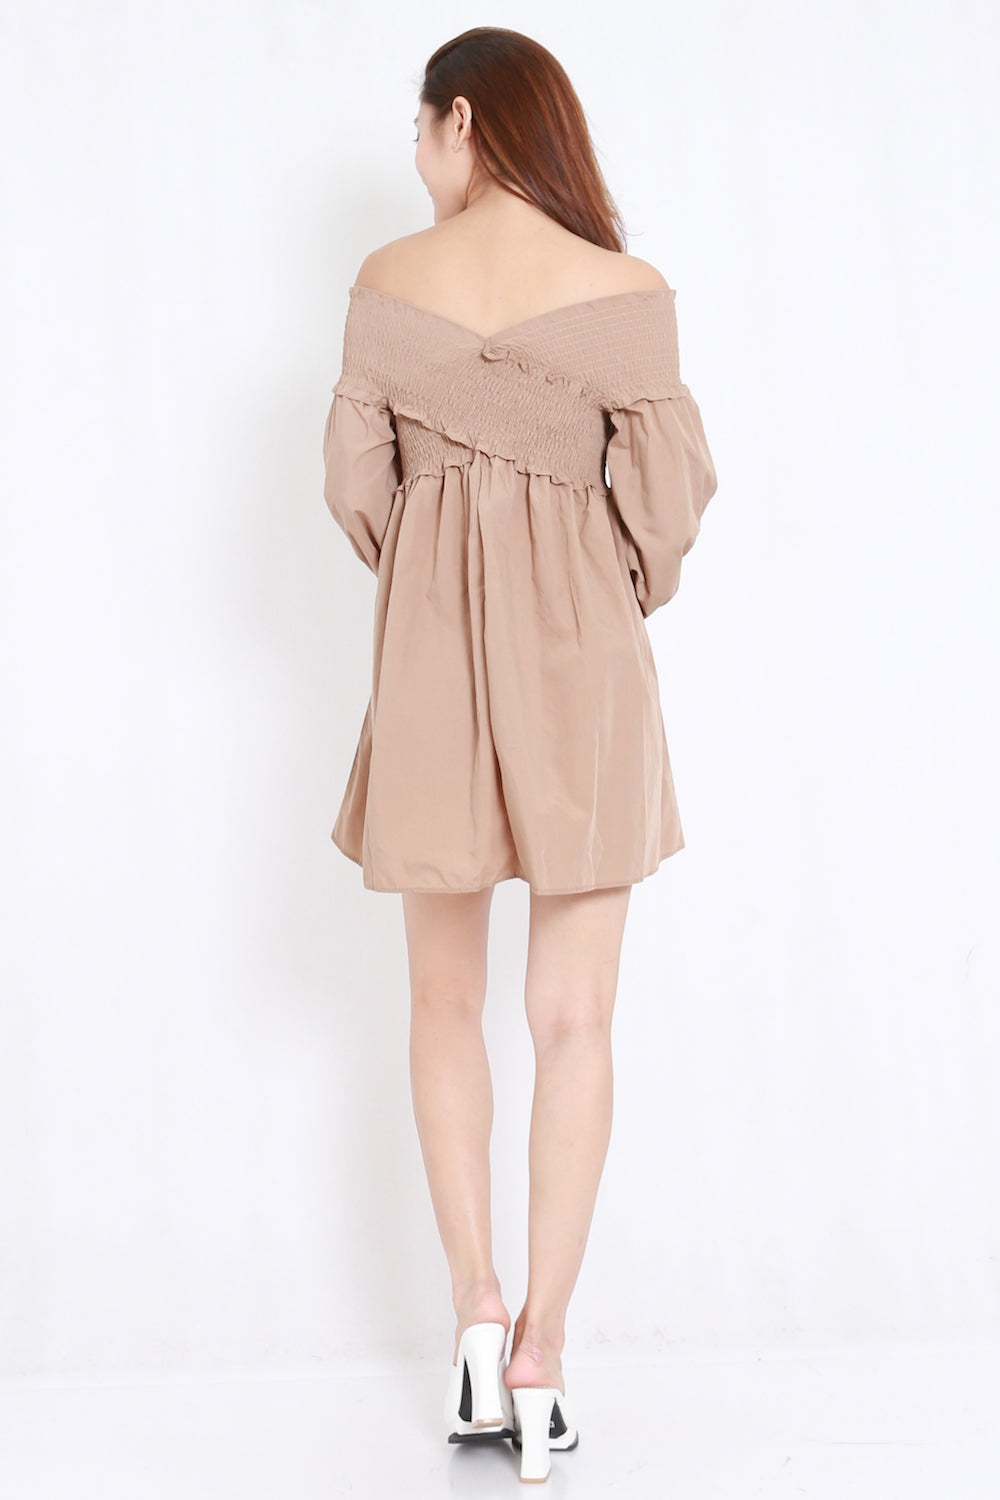 fa37406b2 Smoked Puffy Babydoll Dress (Taupe) – Carrislabelle